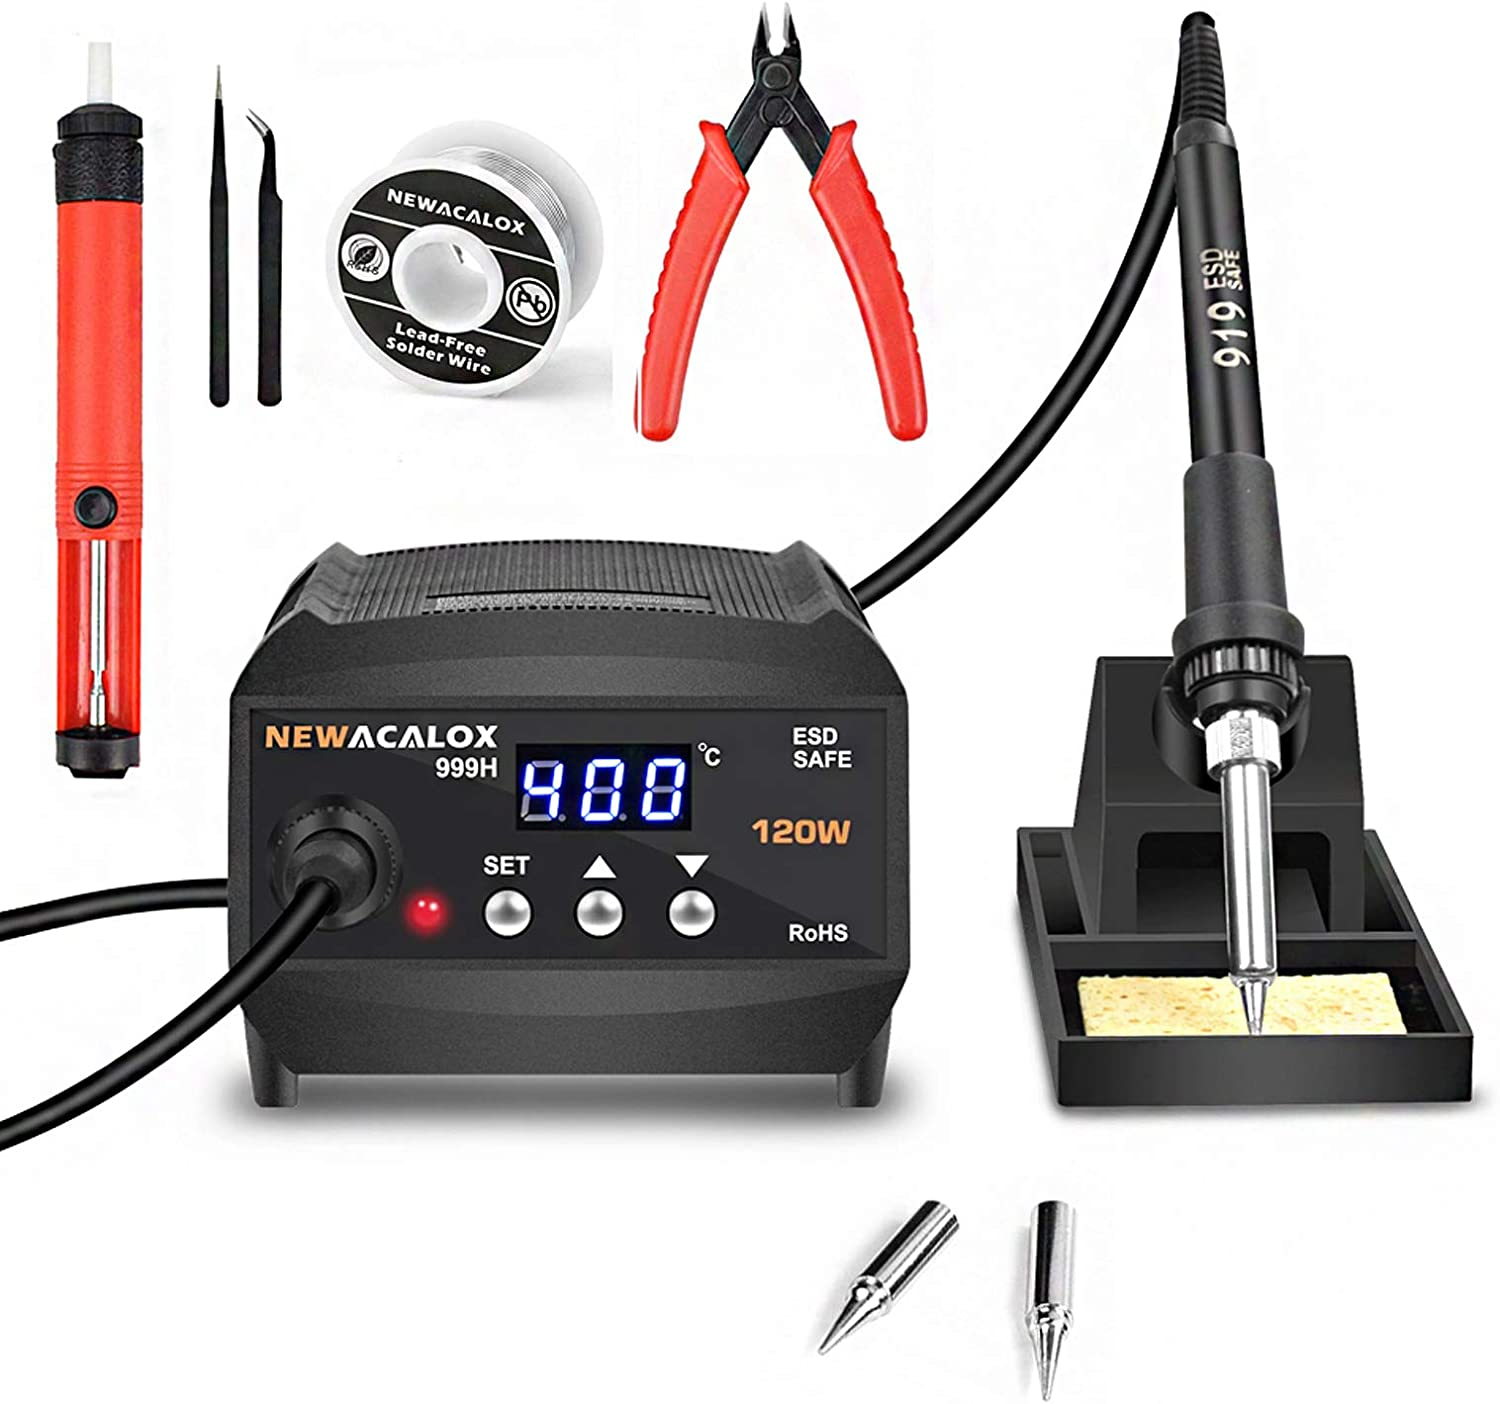 120W Digital Max 51% Popular products OFF Soldering Station with Pre Equivalent 200-599℃